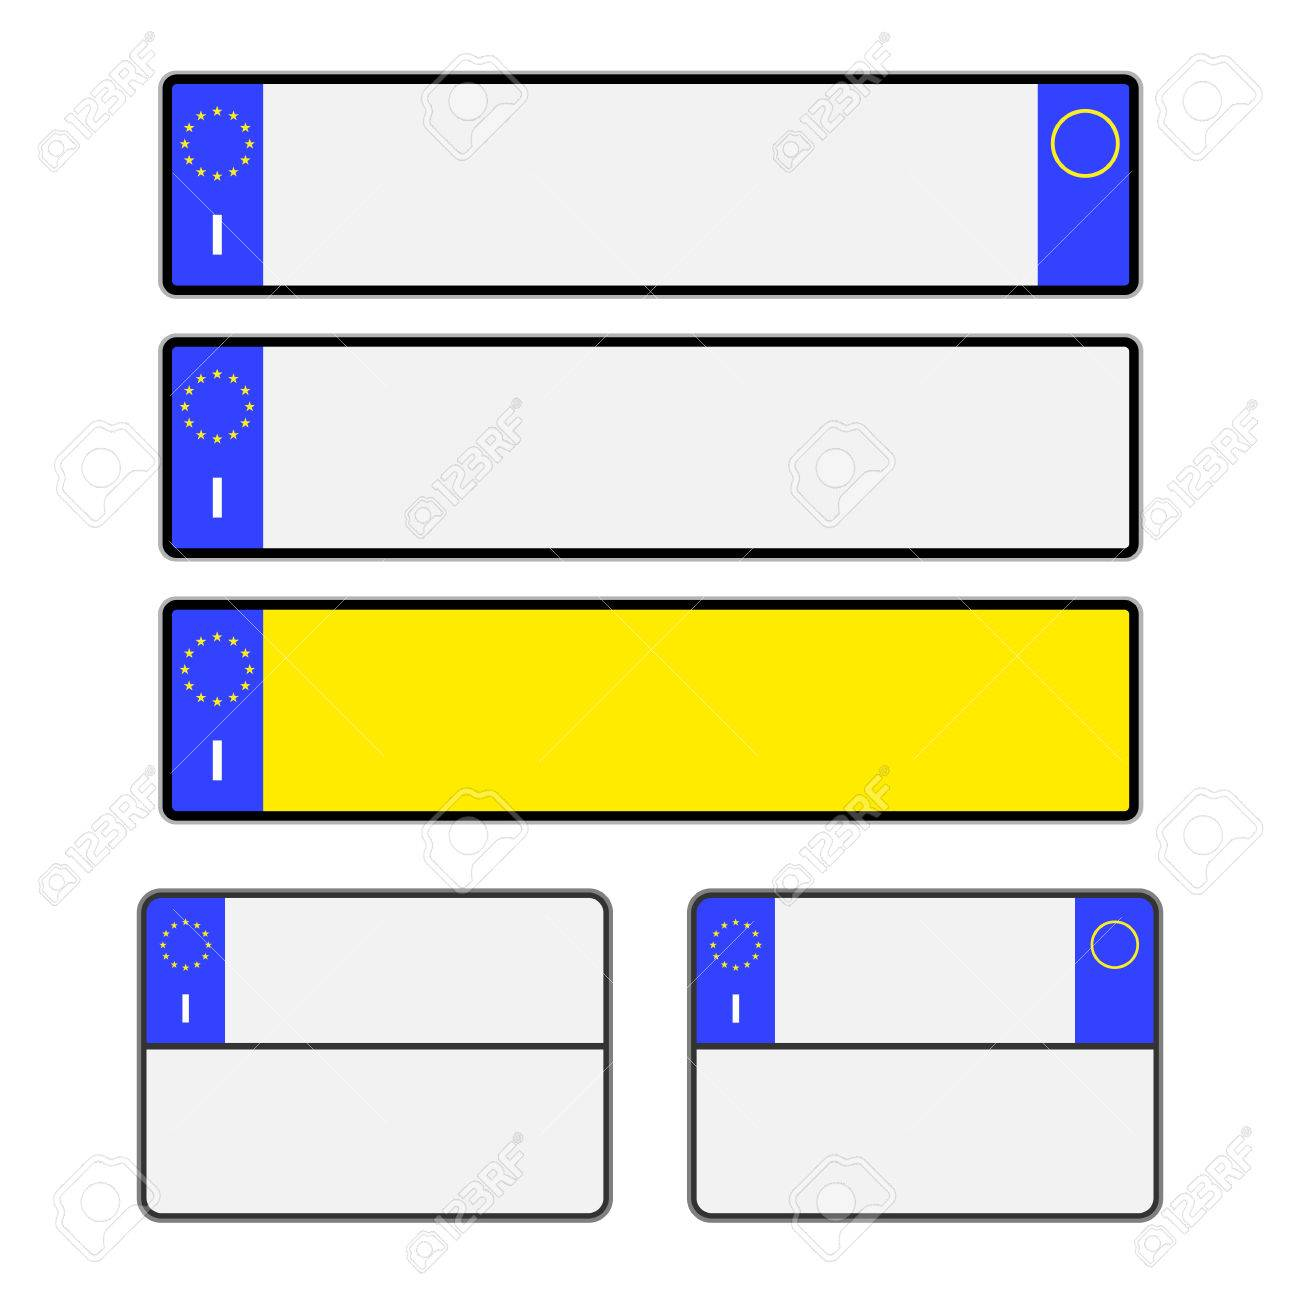 Blank Italian Vehicle Licence Number Plates In Different Styles ...